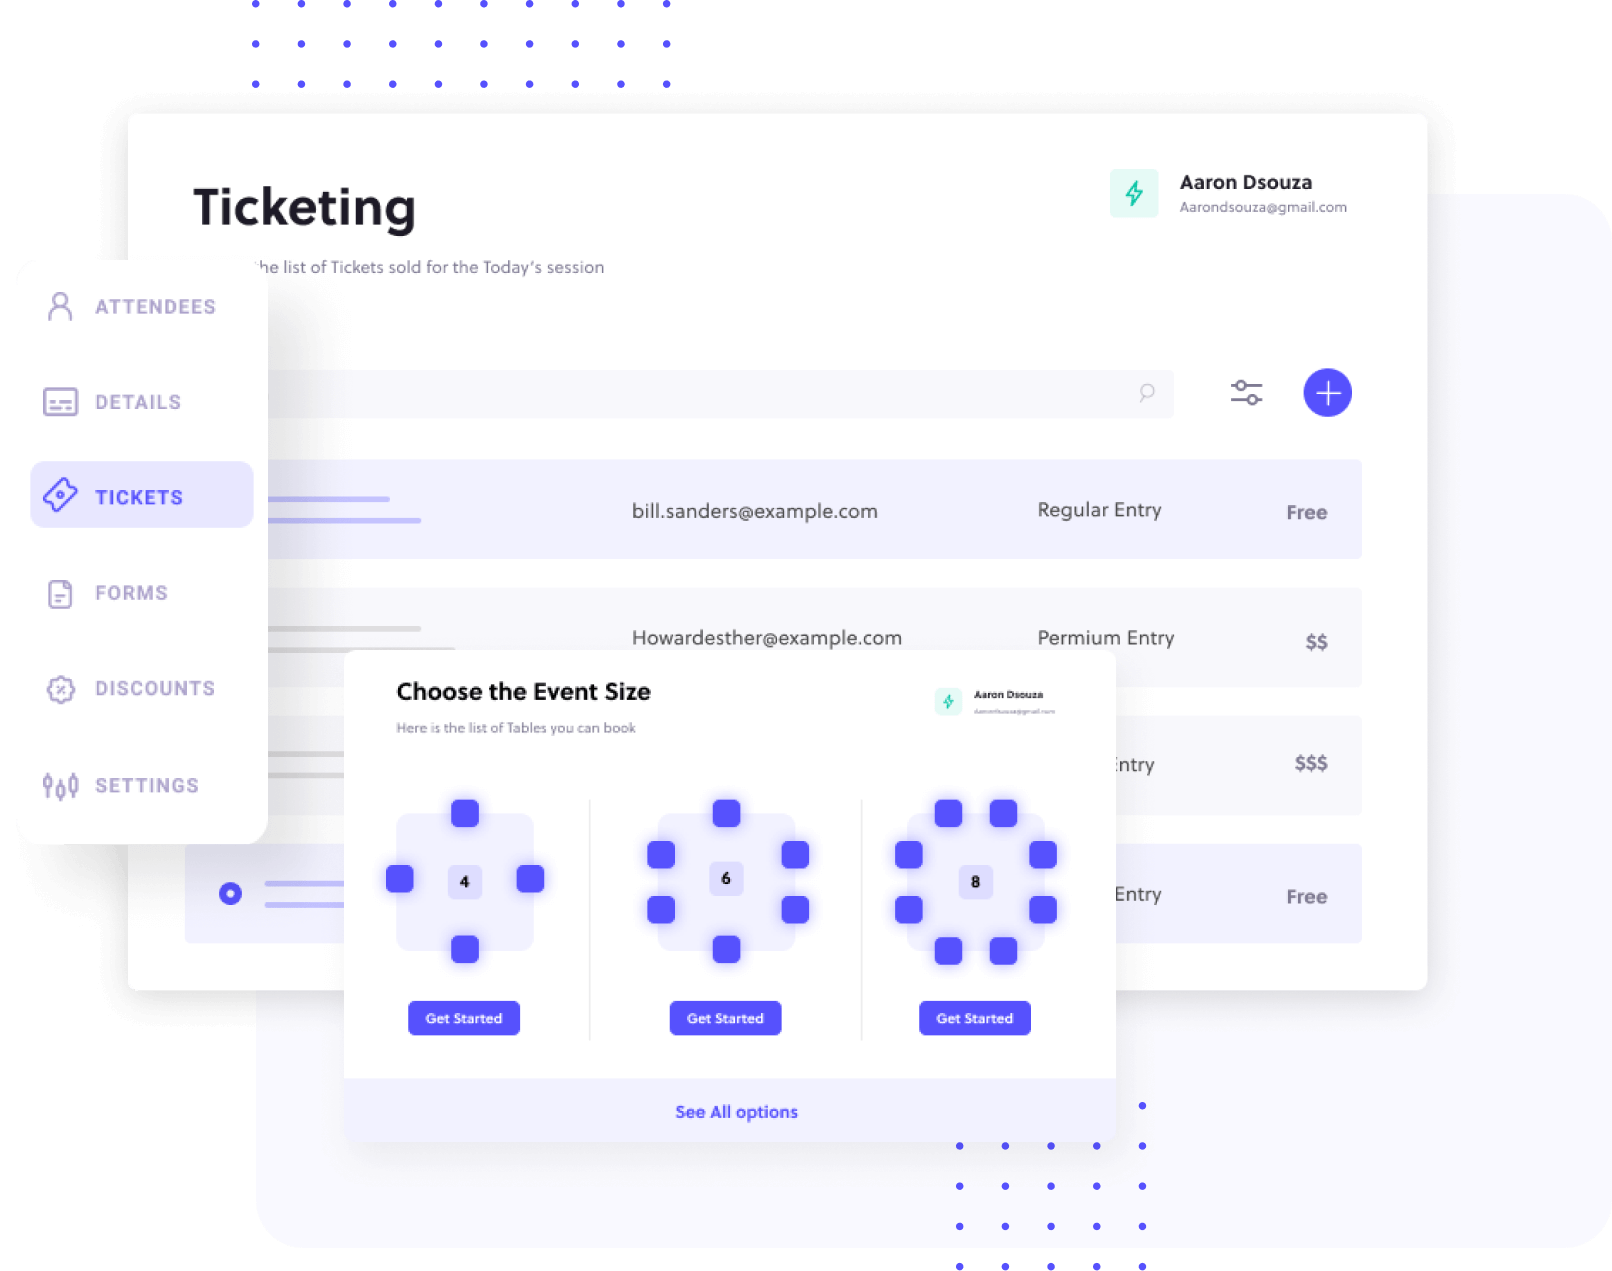 Ticketing management system showing different options of event sizes to choose from.